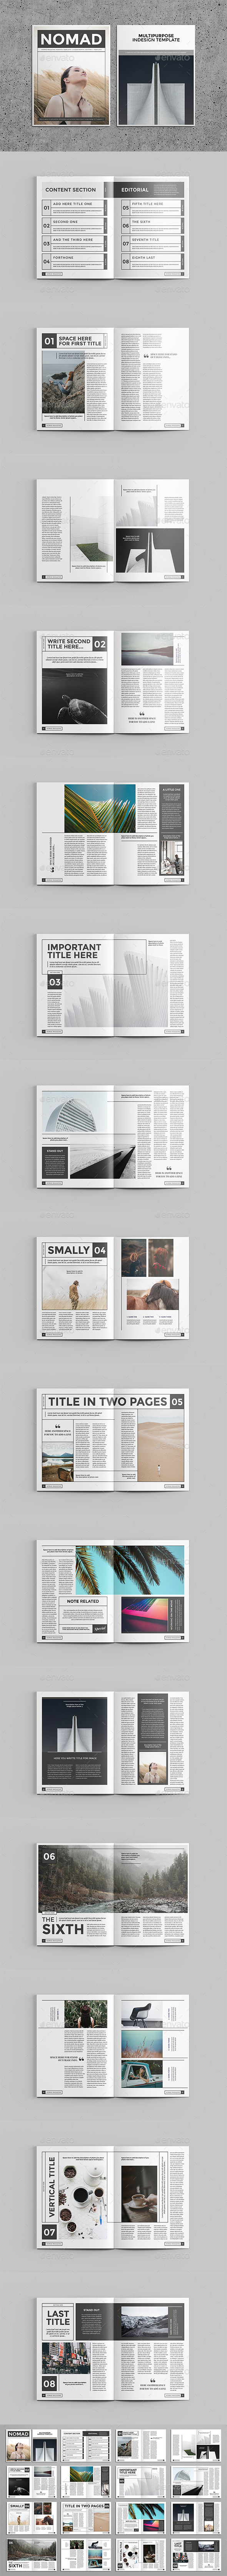 Nomad Magazine Template - Magazines Print Templates